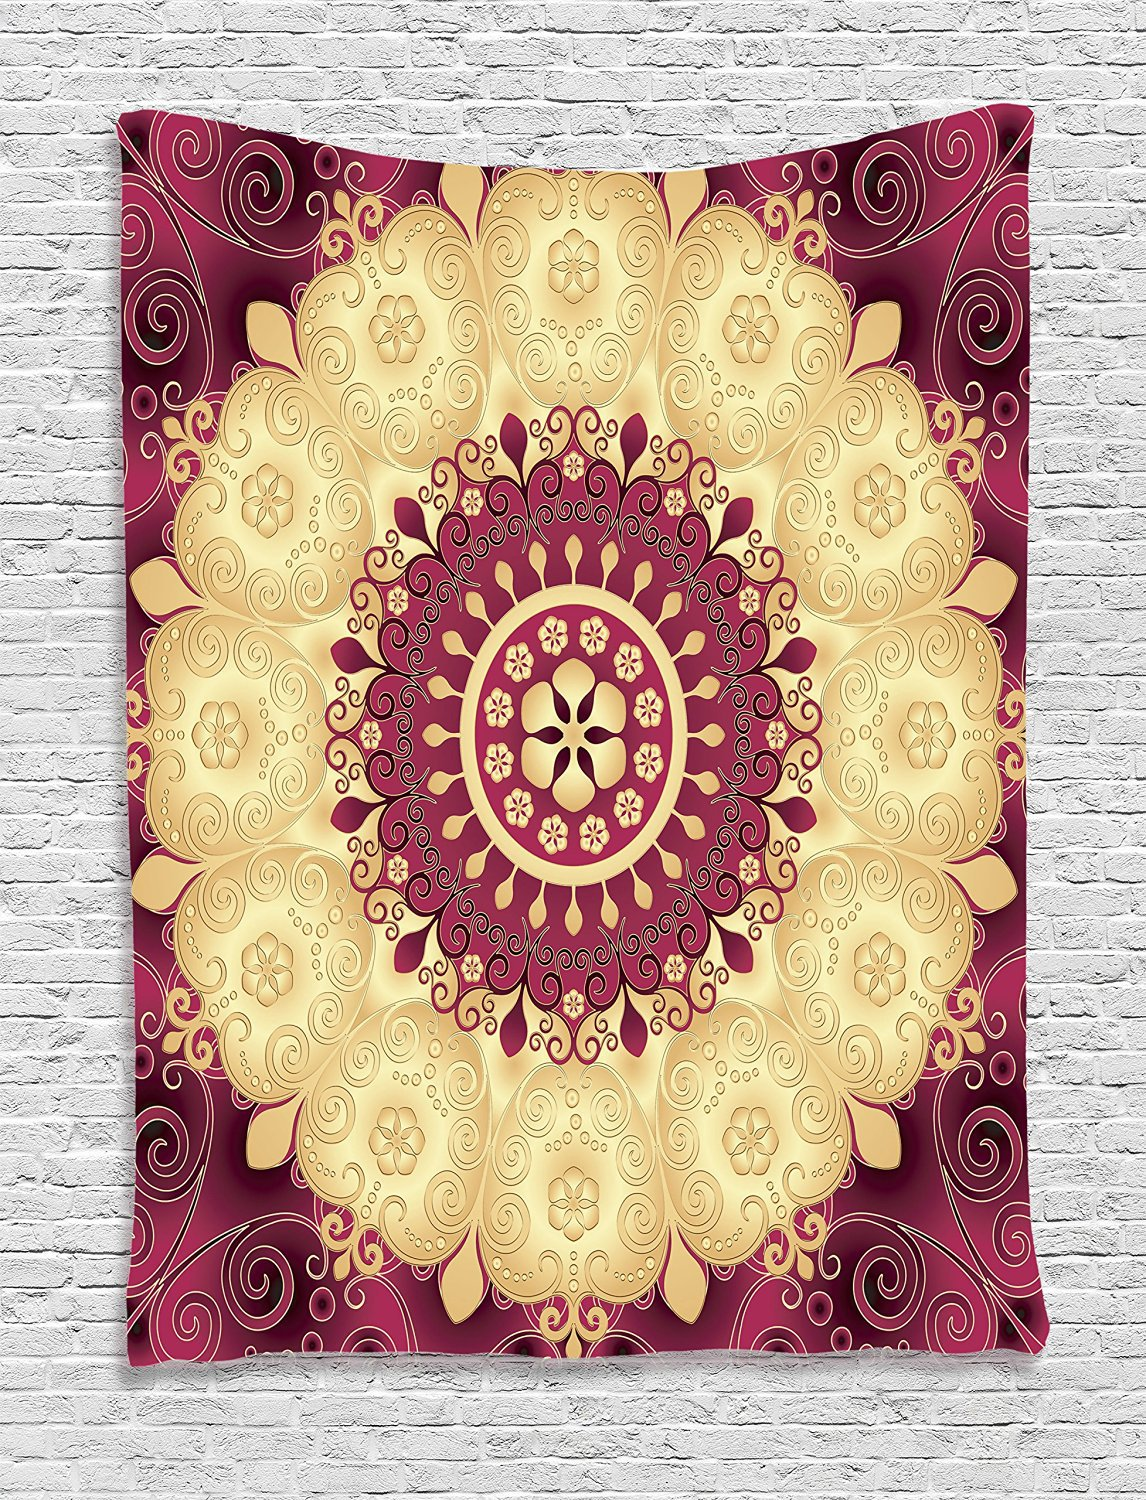 Contemporary Hippie Wall Decor Images - Wall Art Collections ...